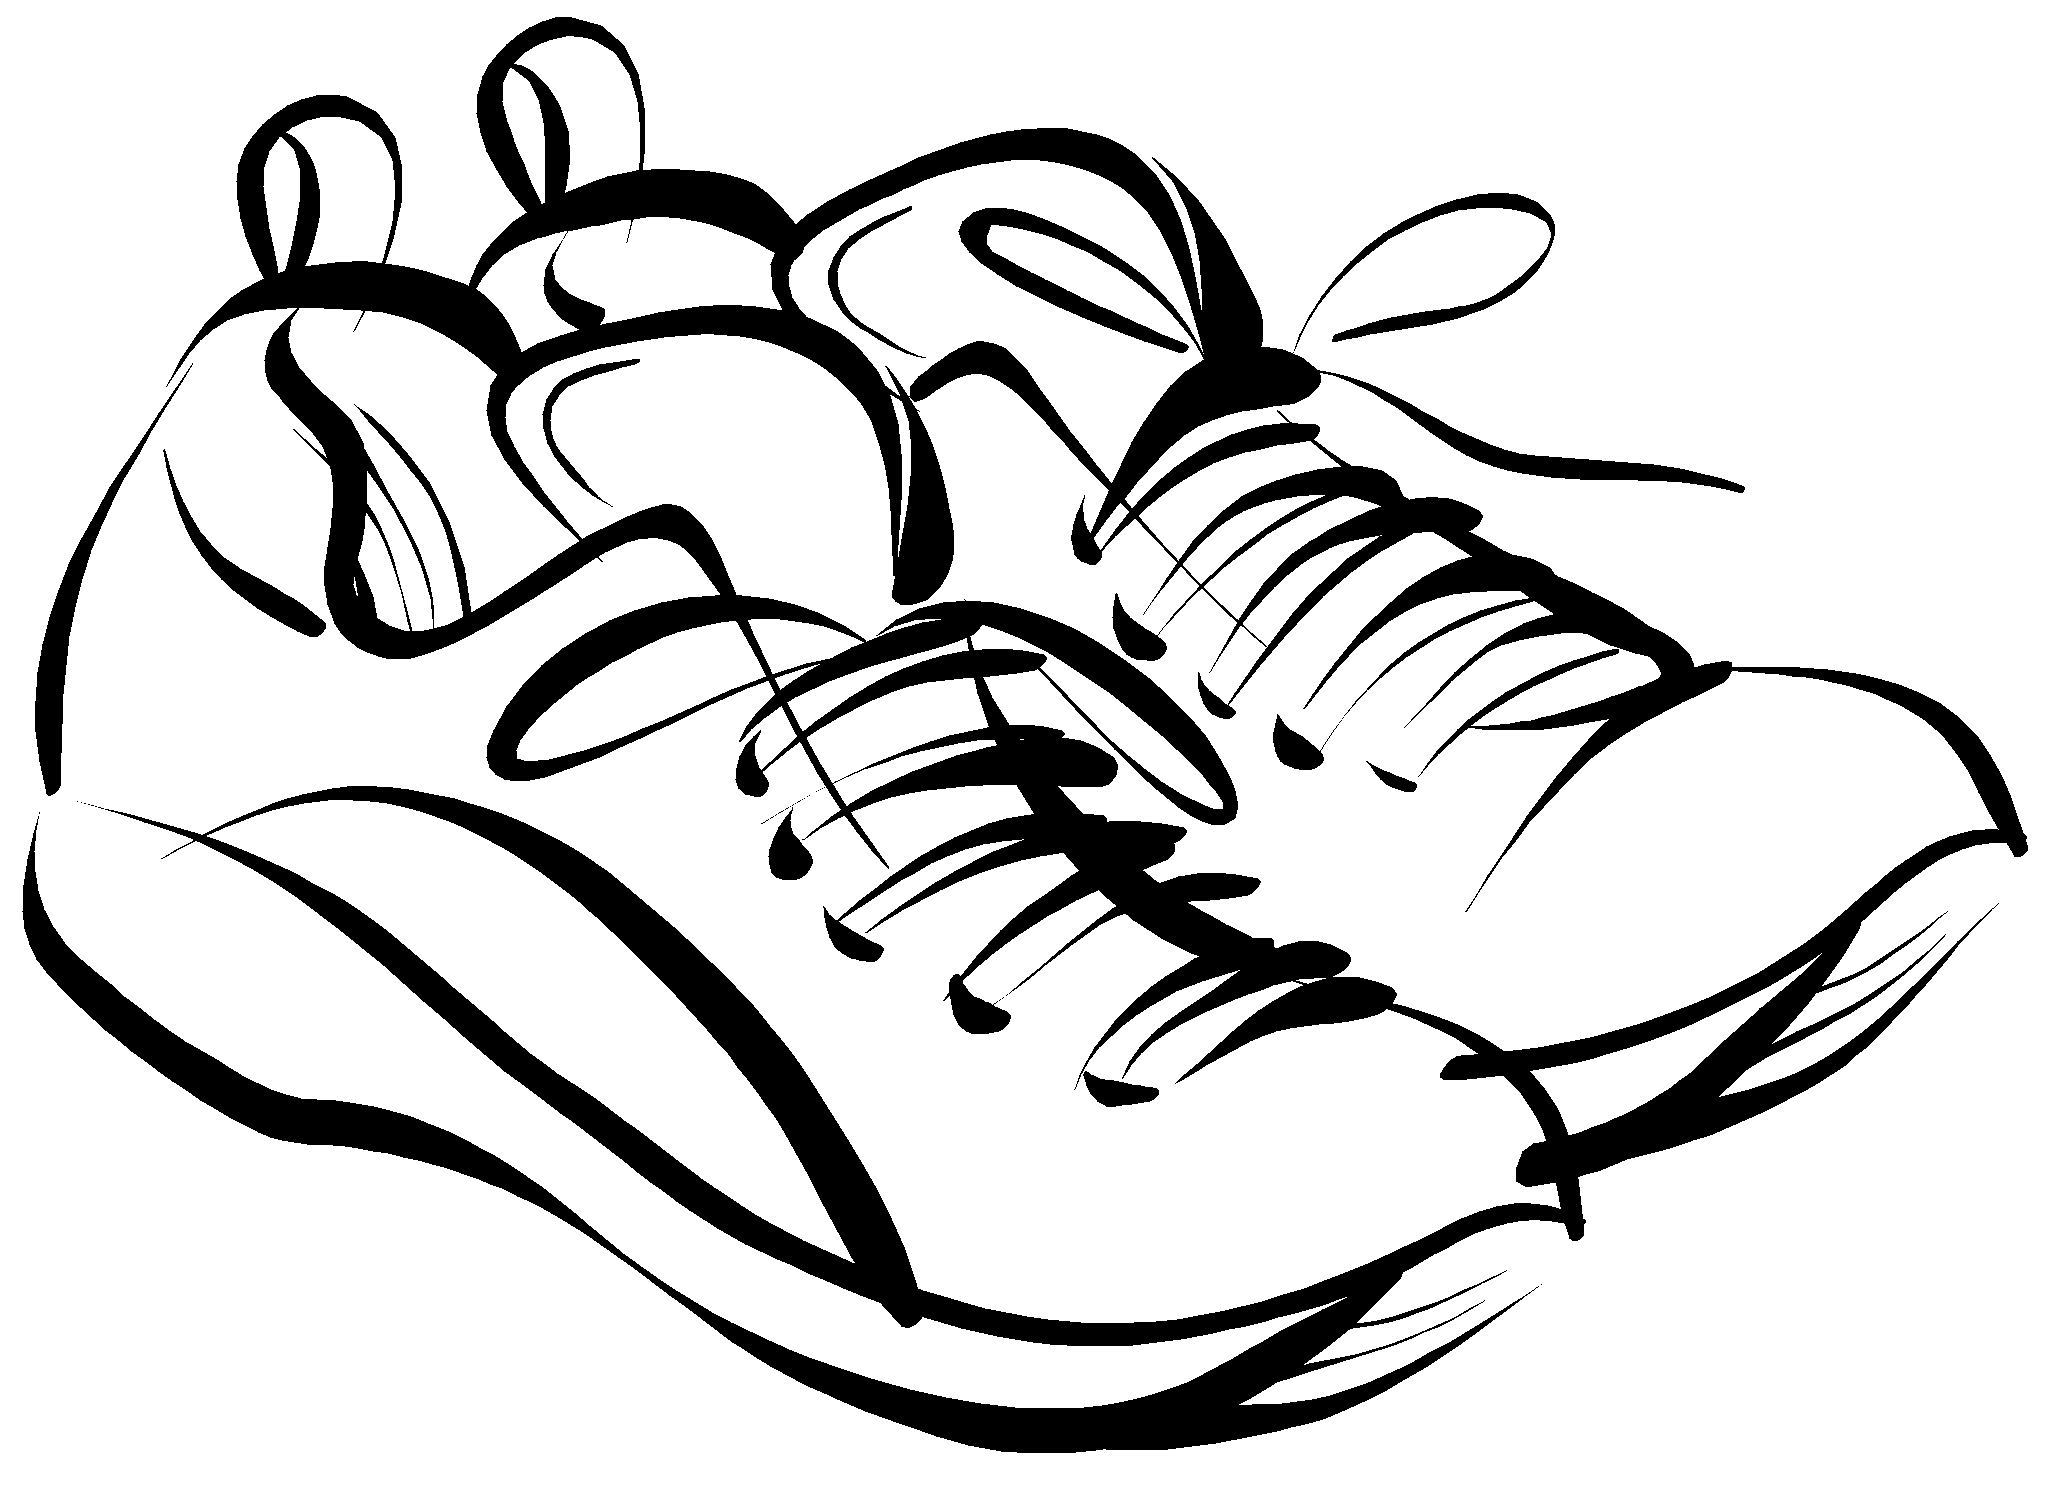 Running shoes drawing panda. Clipart turkey shoe